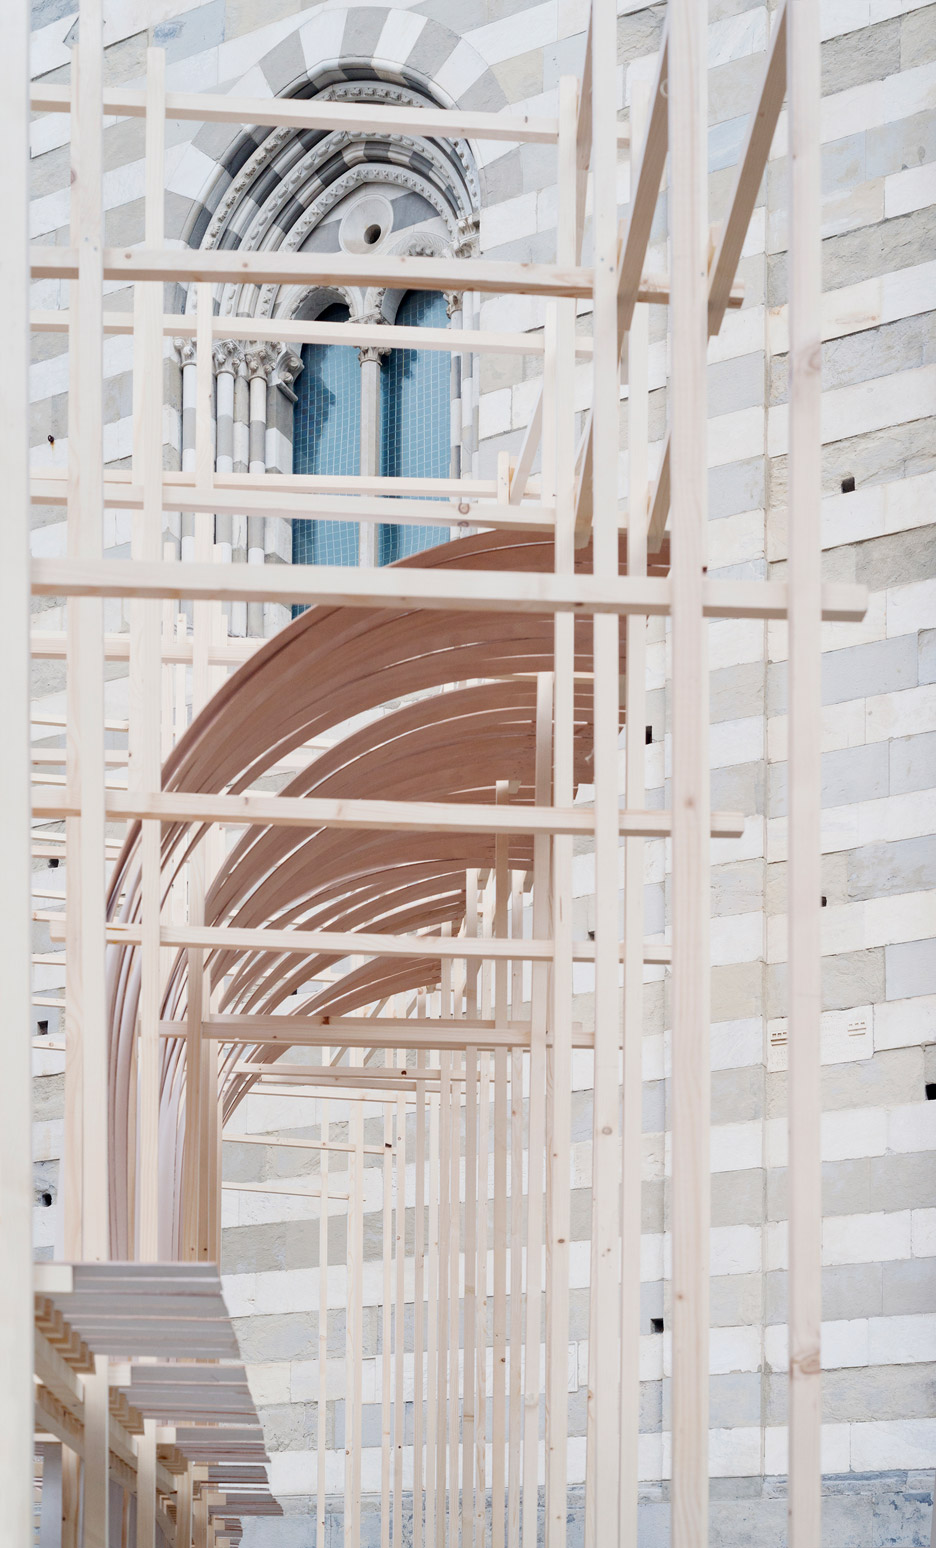 Bent installation for New Generations architecture festival